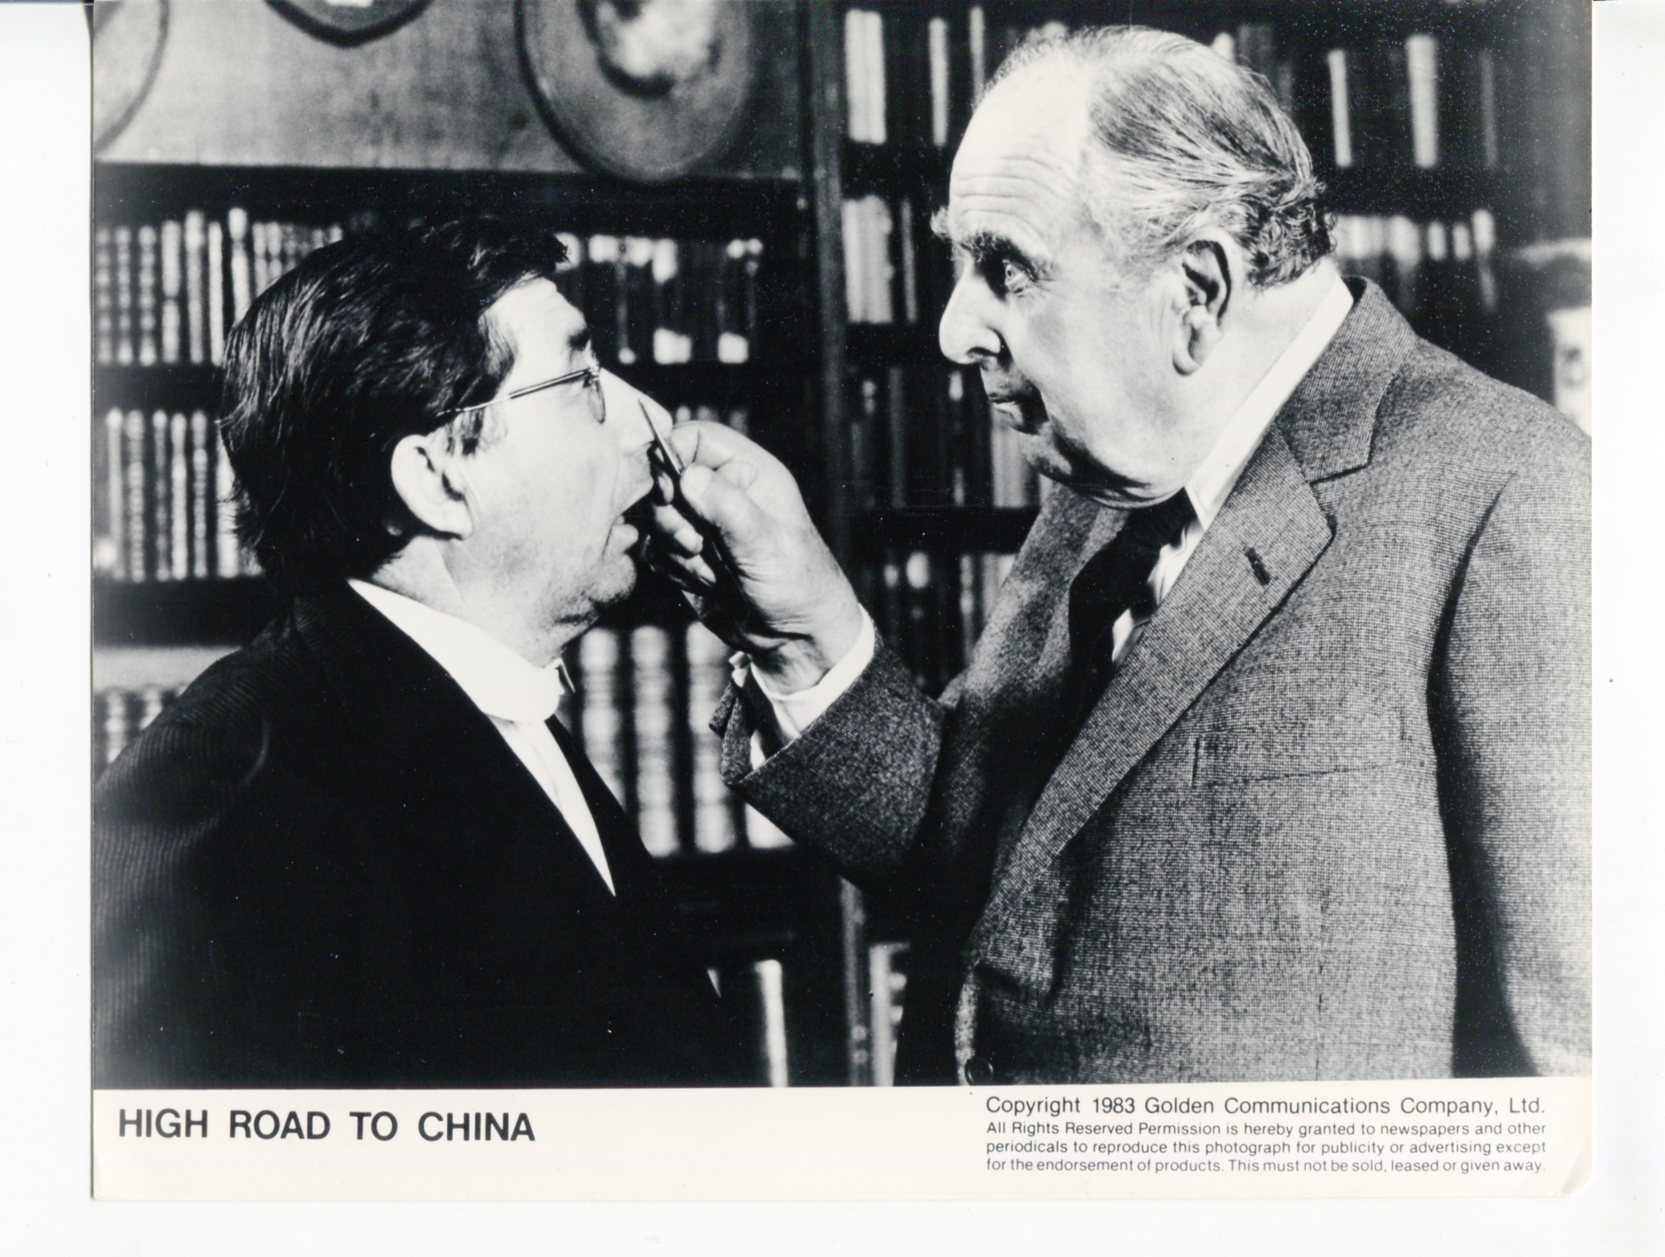 High Road To China-Robert Morley-Timothy Bateson-8x10-B&W-Promo-Still Fine